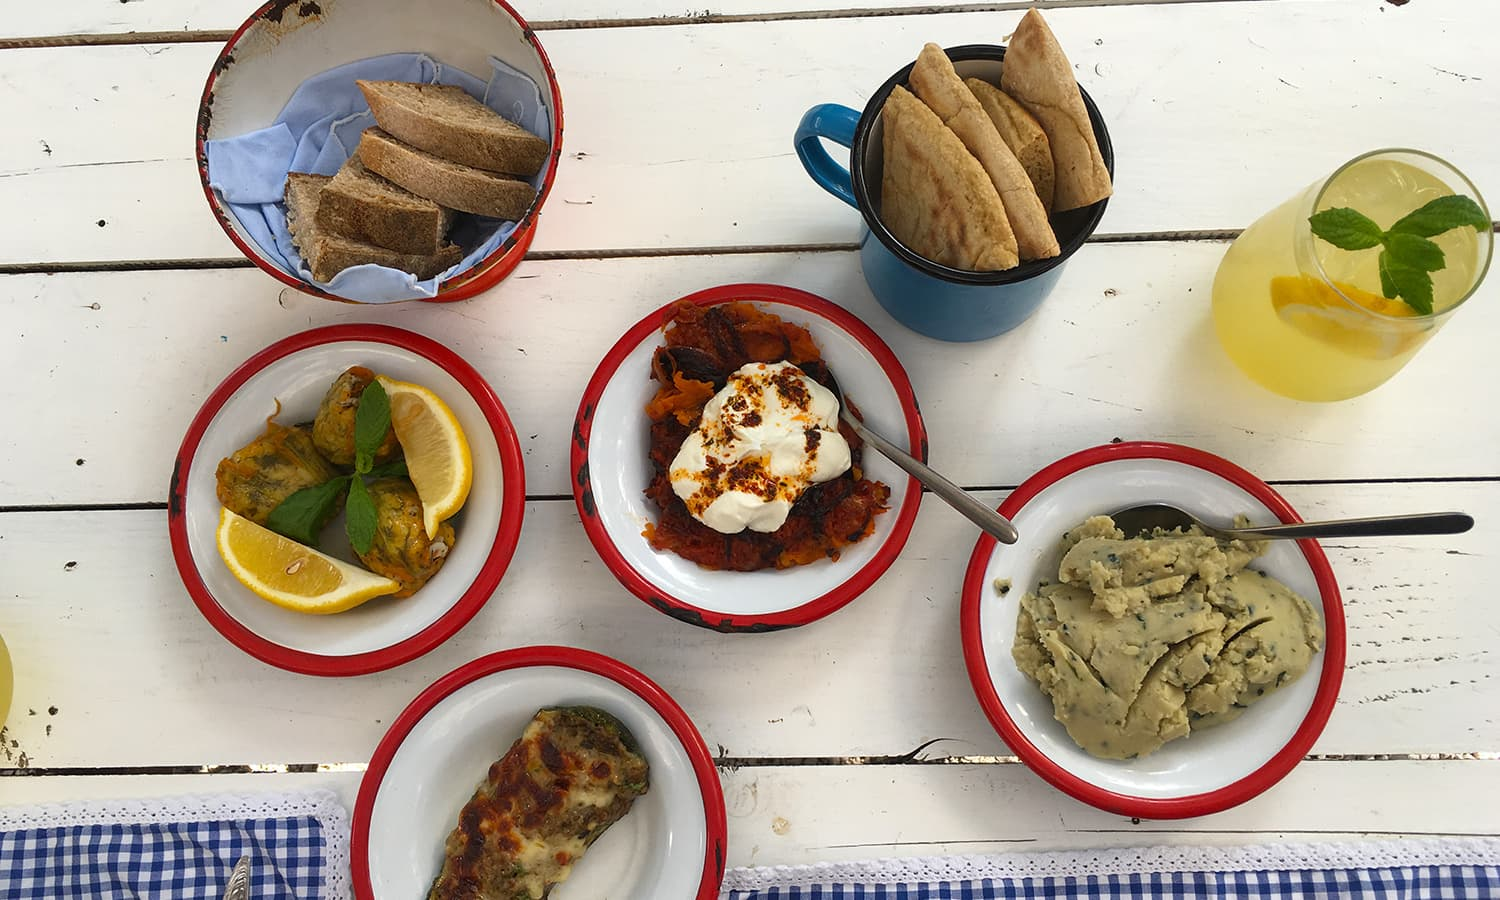 Enjoying traditional Turkish mezze at Asma Yaprağı.